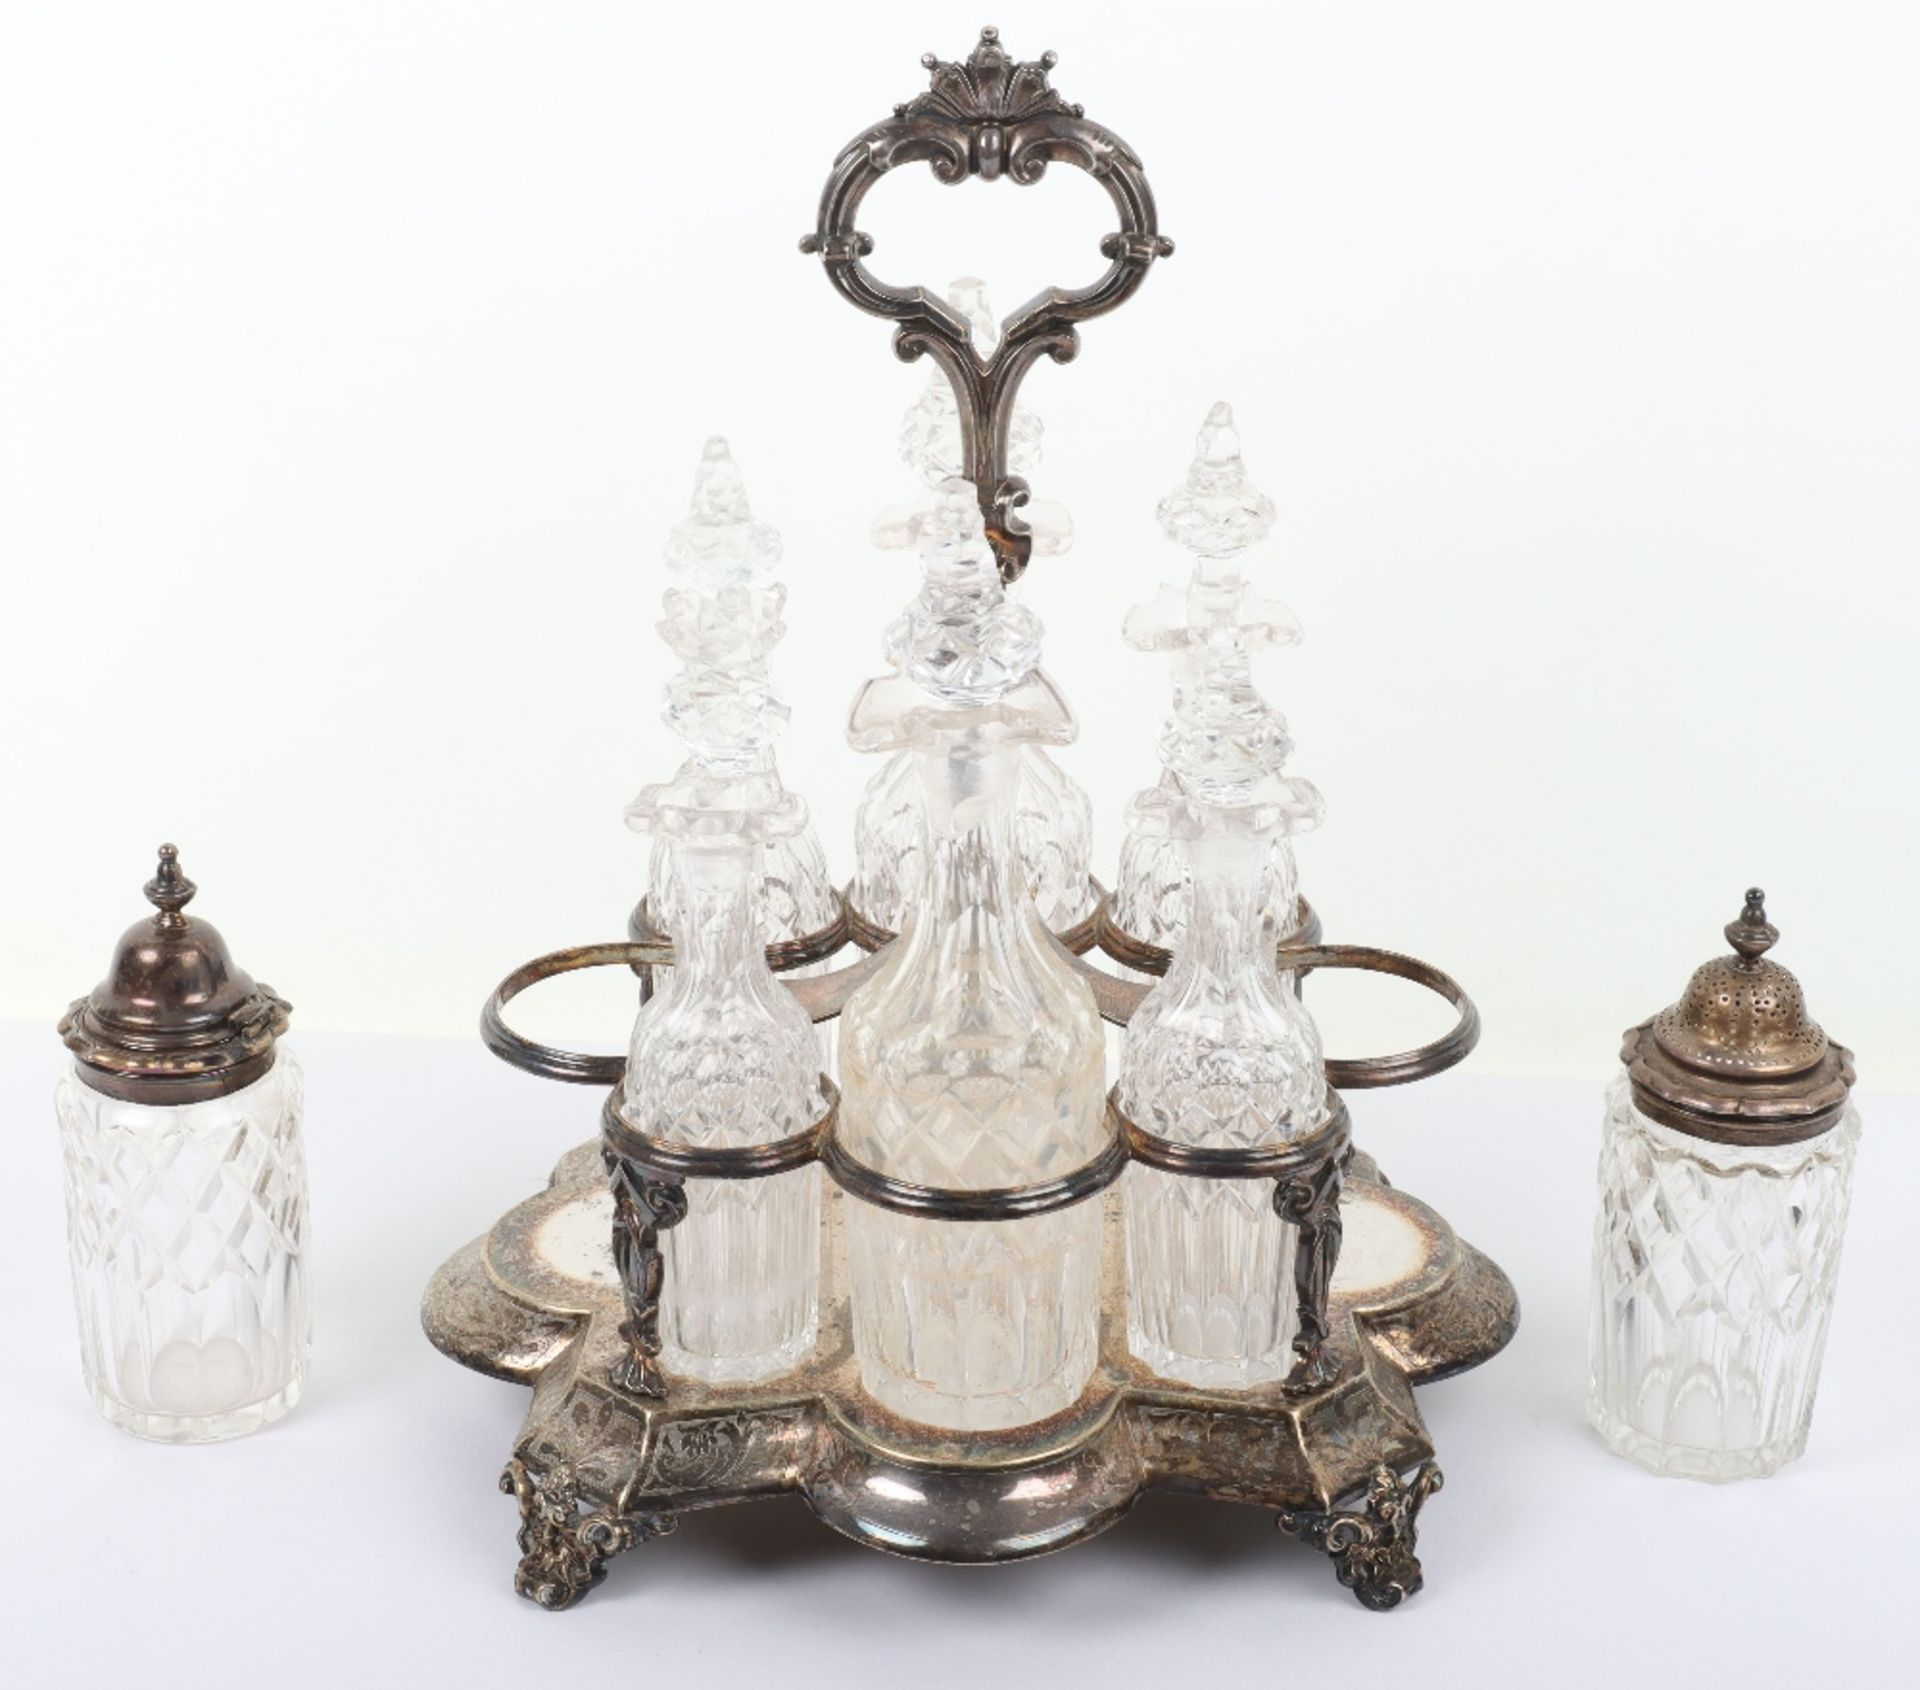 A Victorian silver and silver plated glass cruet set - Image 9 of 23